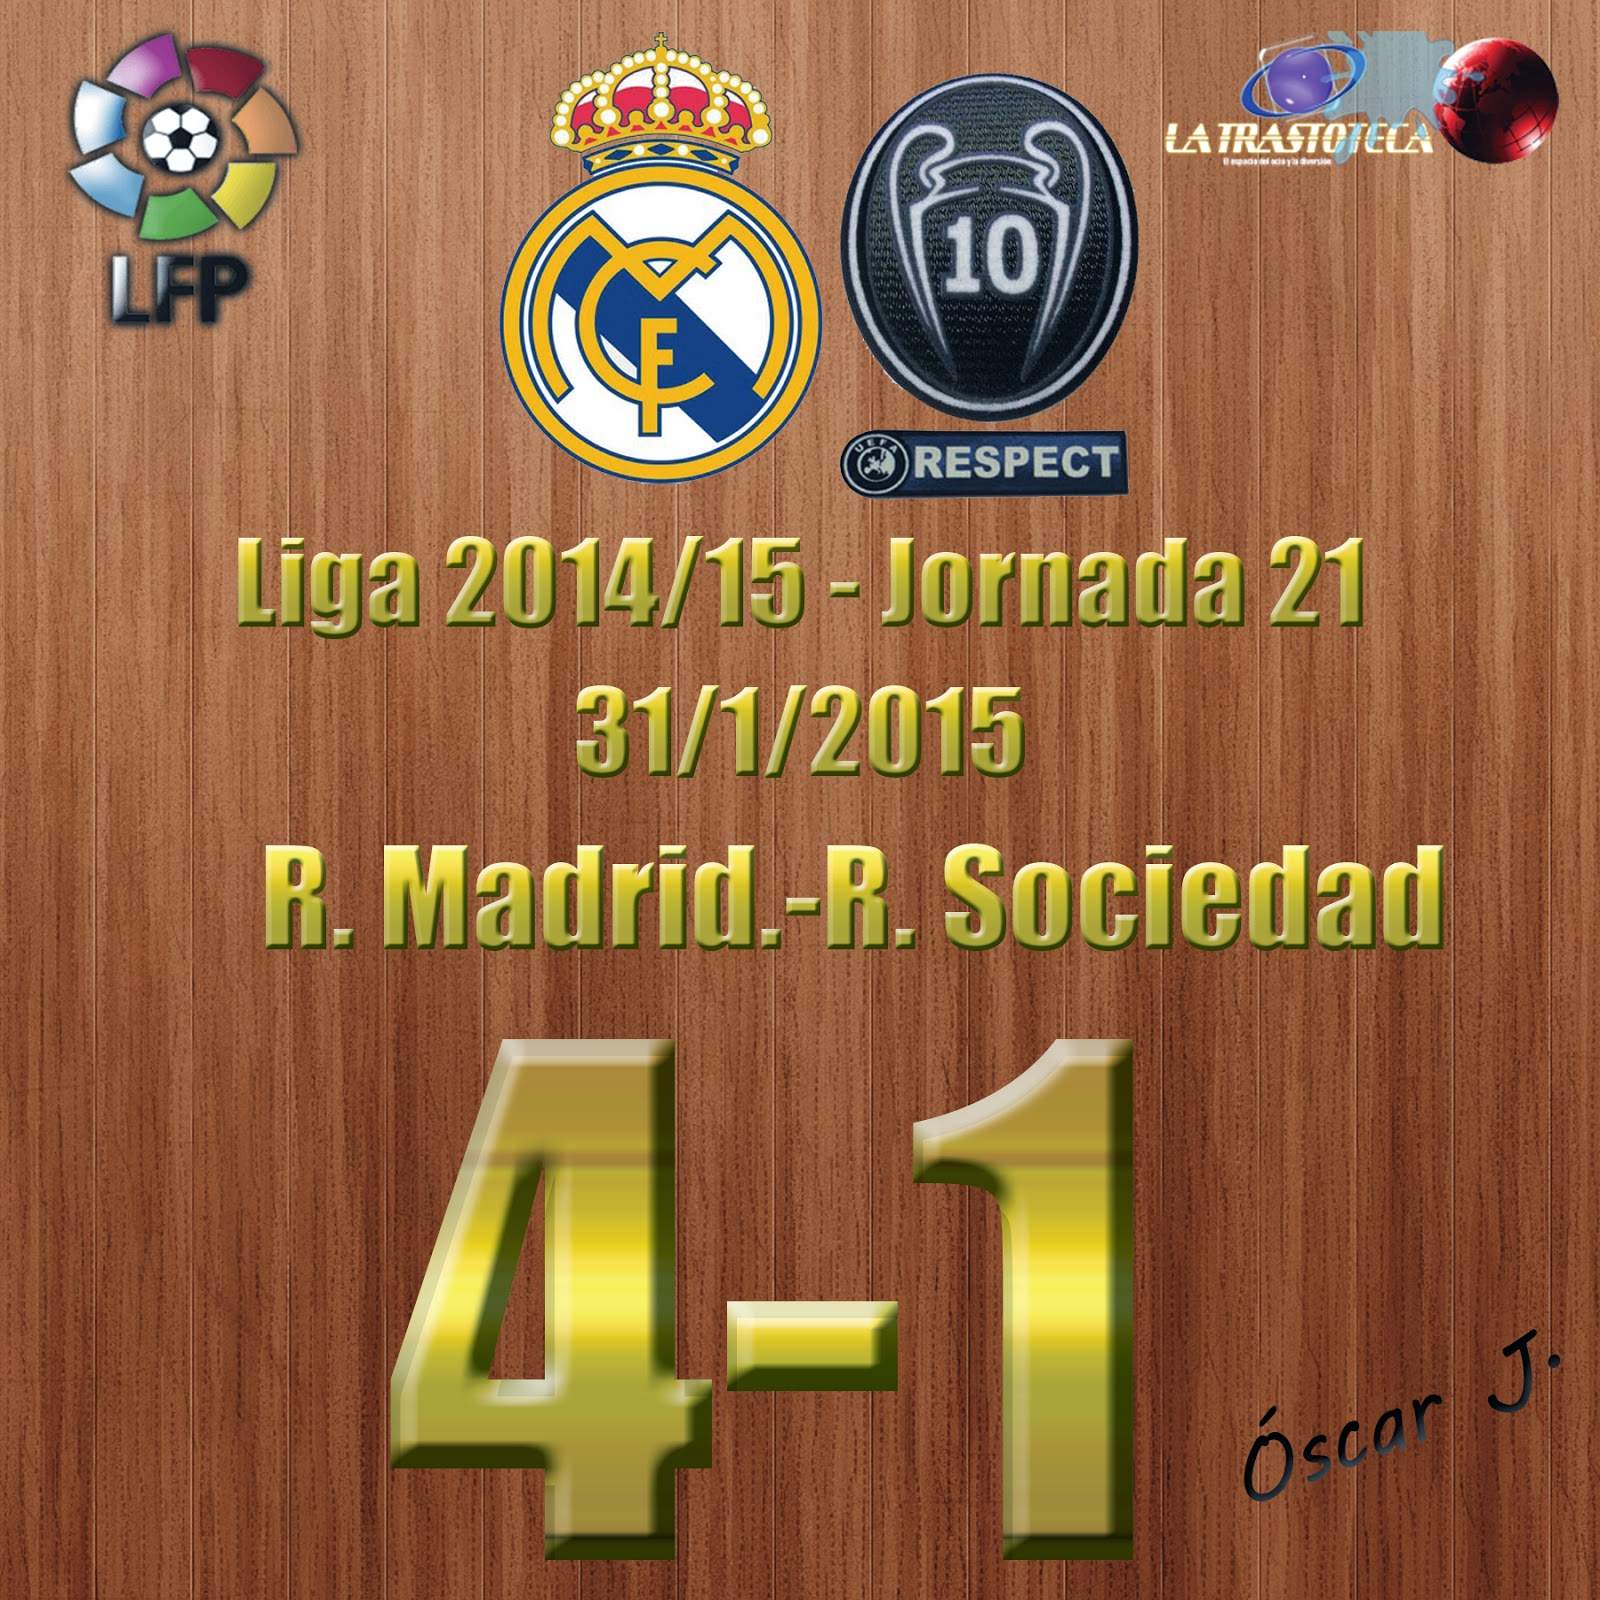 Real Madrid 4-1 Real Sociedad - Liga 2014/15 - Jornada 21 - (31/1/2015)